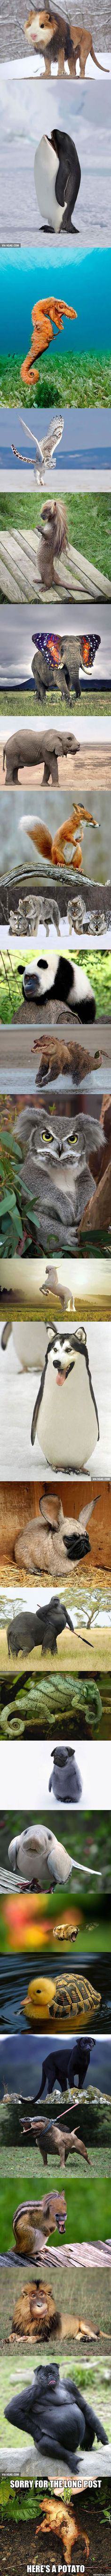 These animal hybrids never get old to me.